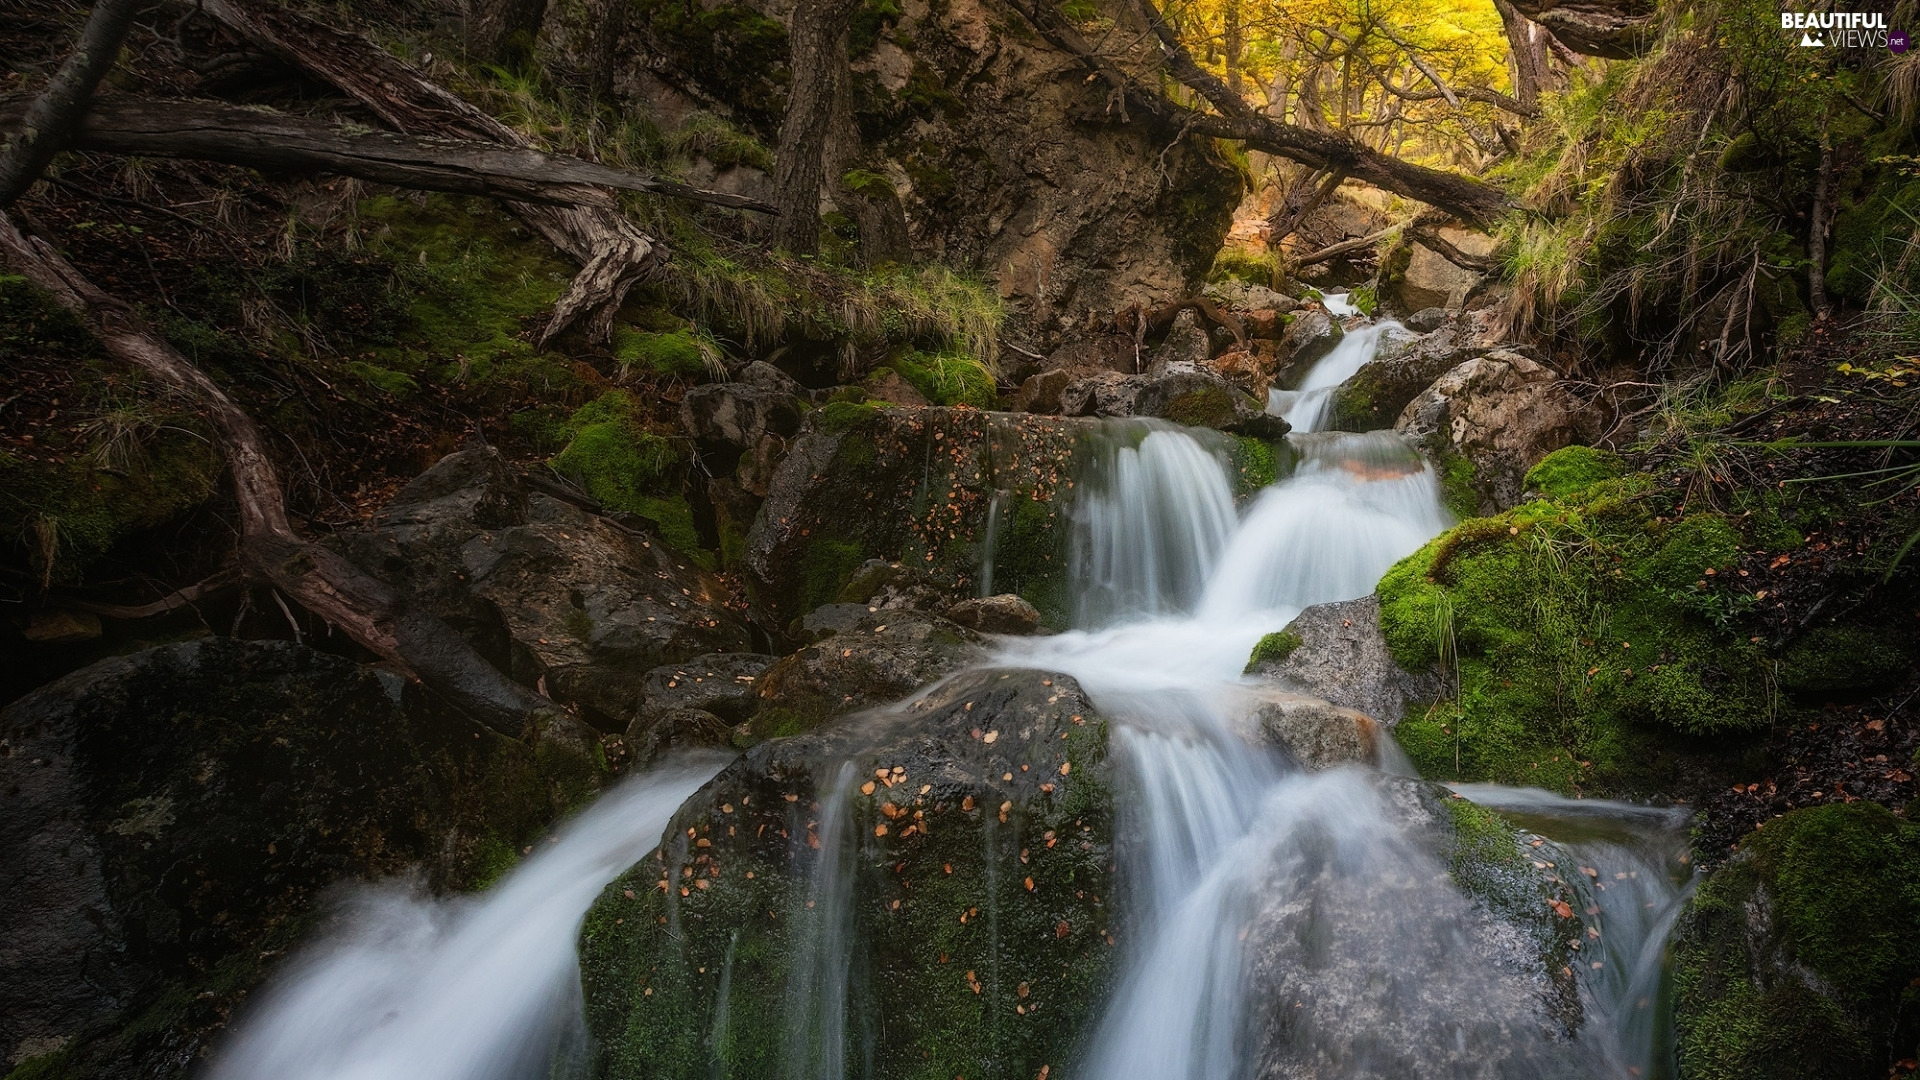 VEGETATION, Patagonia, forest, Stones, River, Argentina, Los Glaciares National Park, rocks, mossy, waterfall